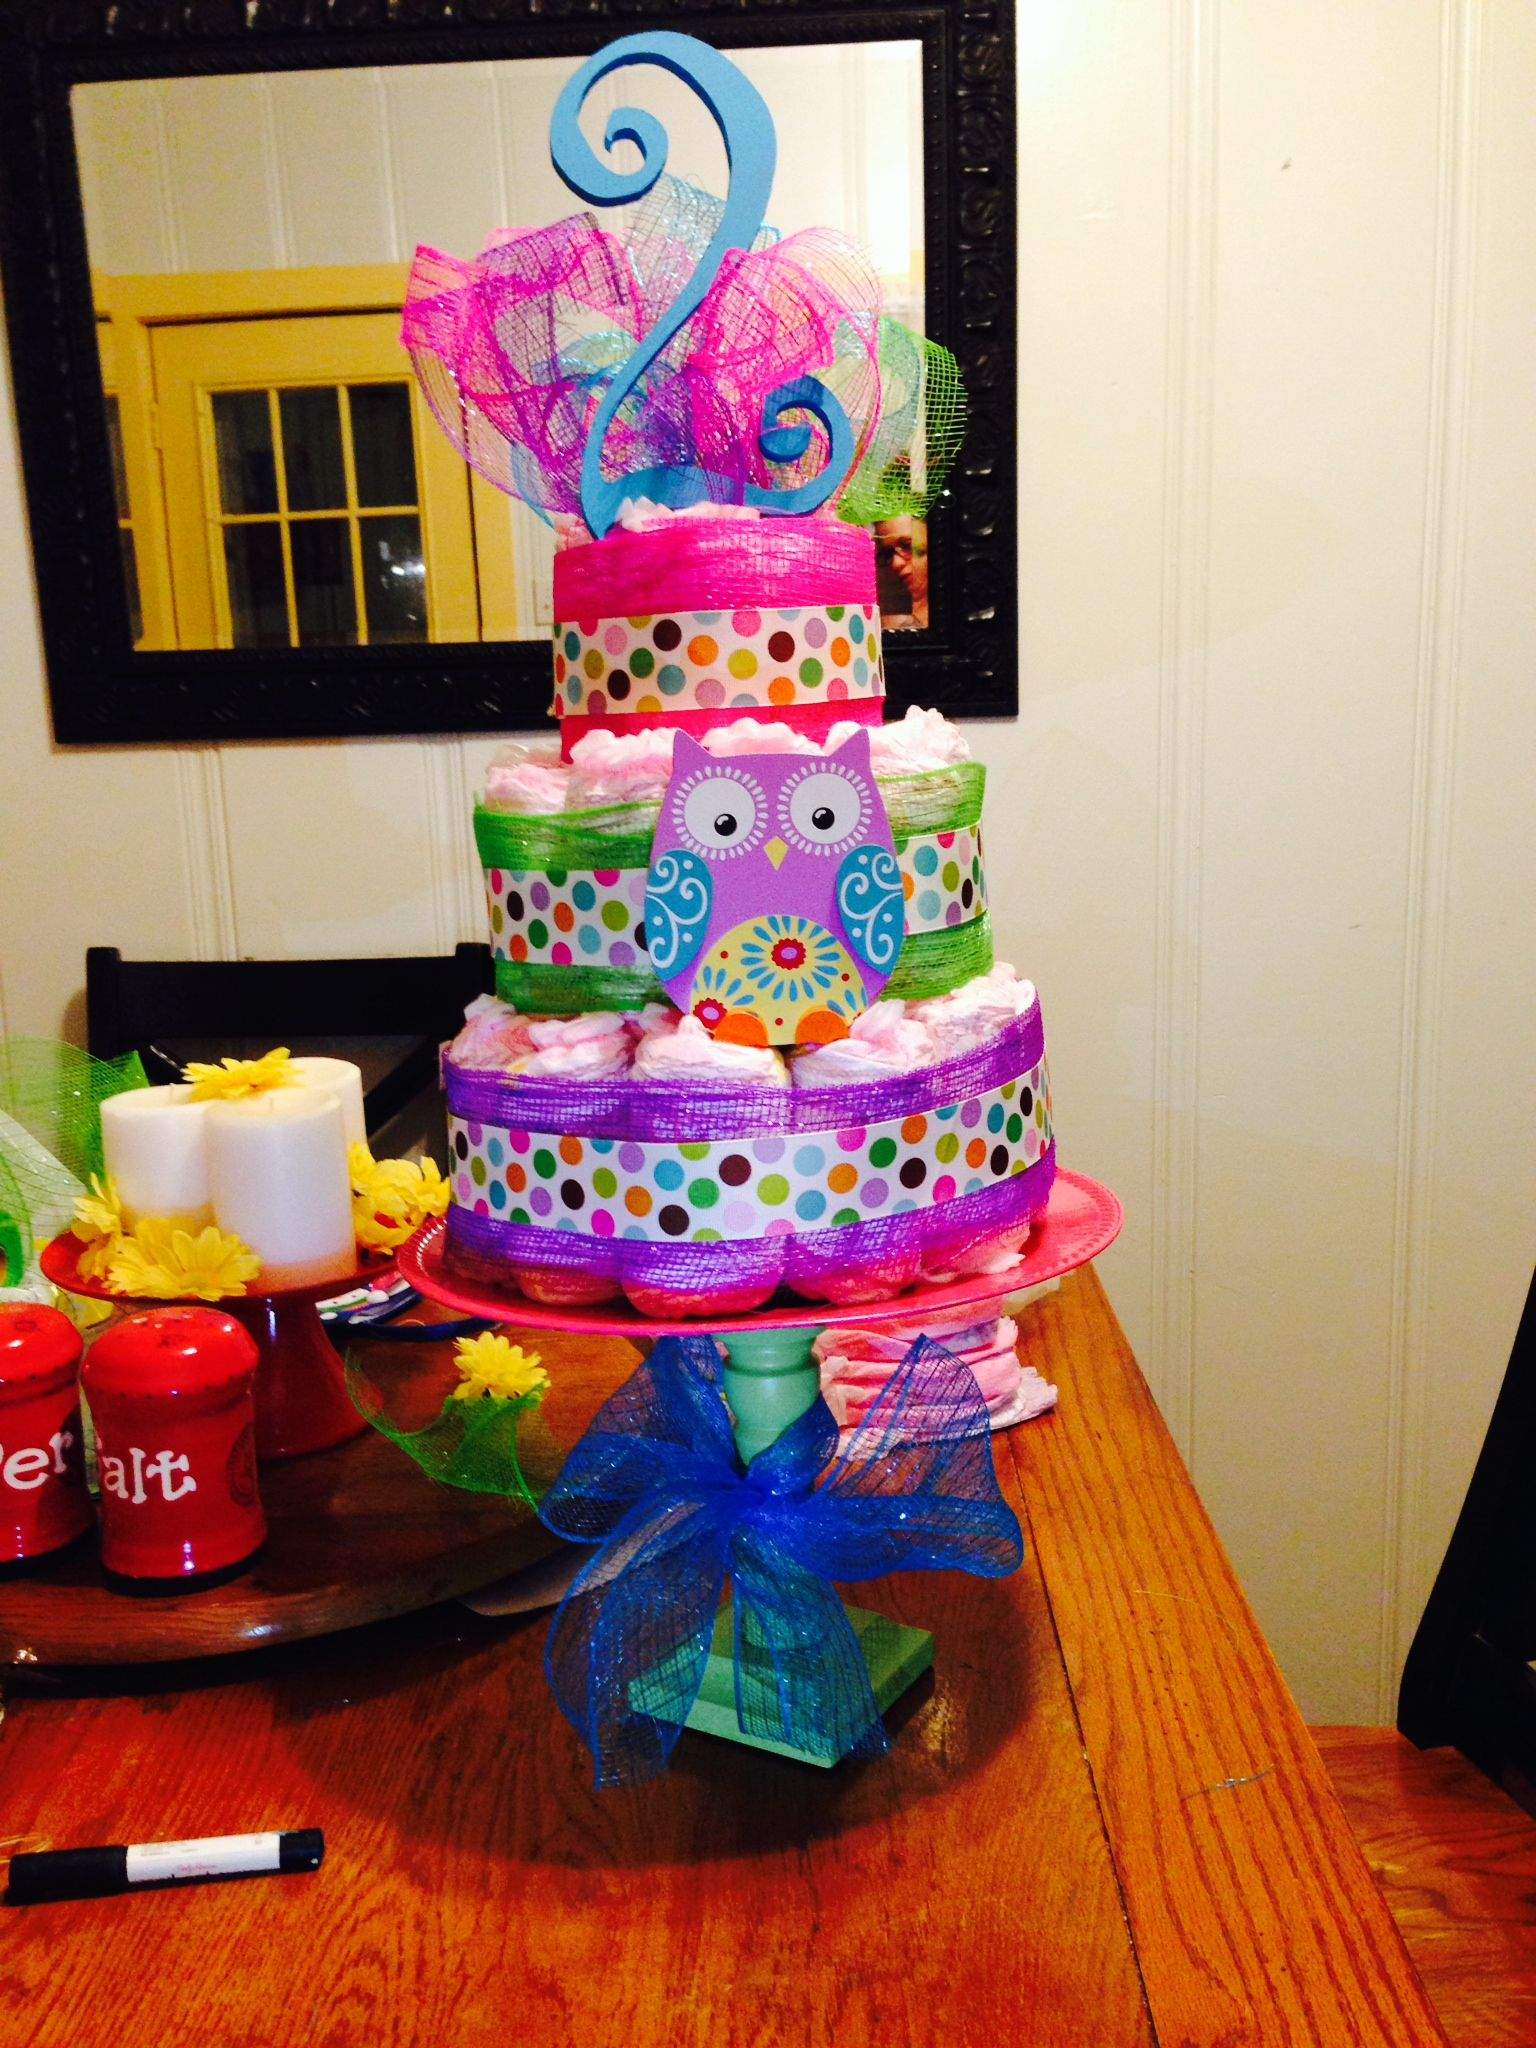 Big Girl Pull Up Cake For 2 Year Old Birthday Party